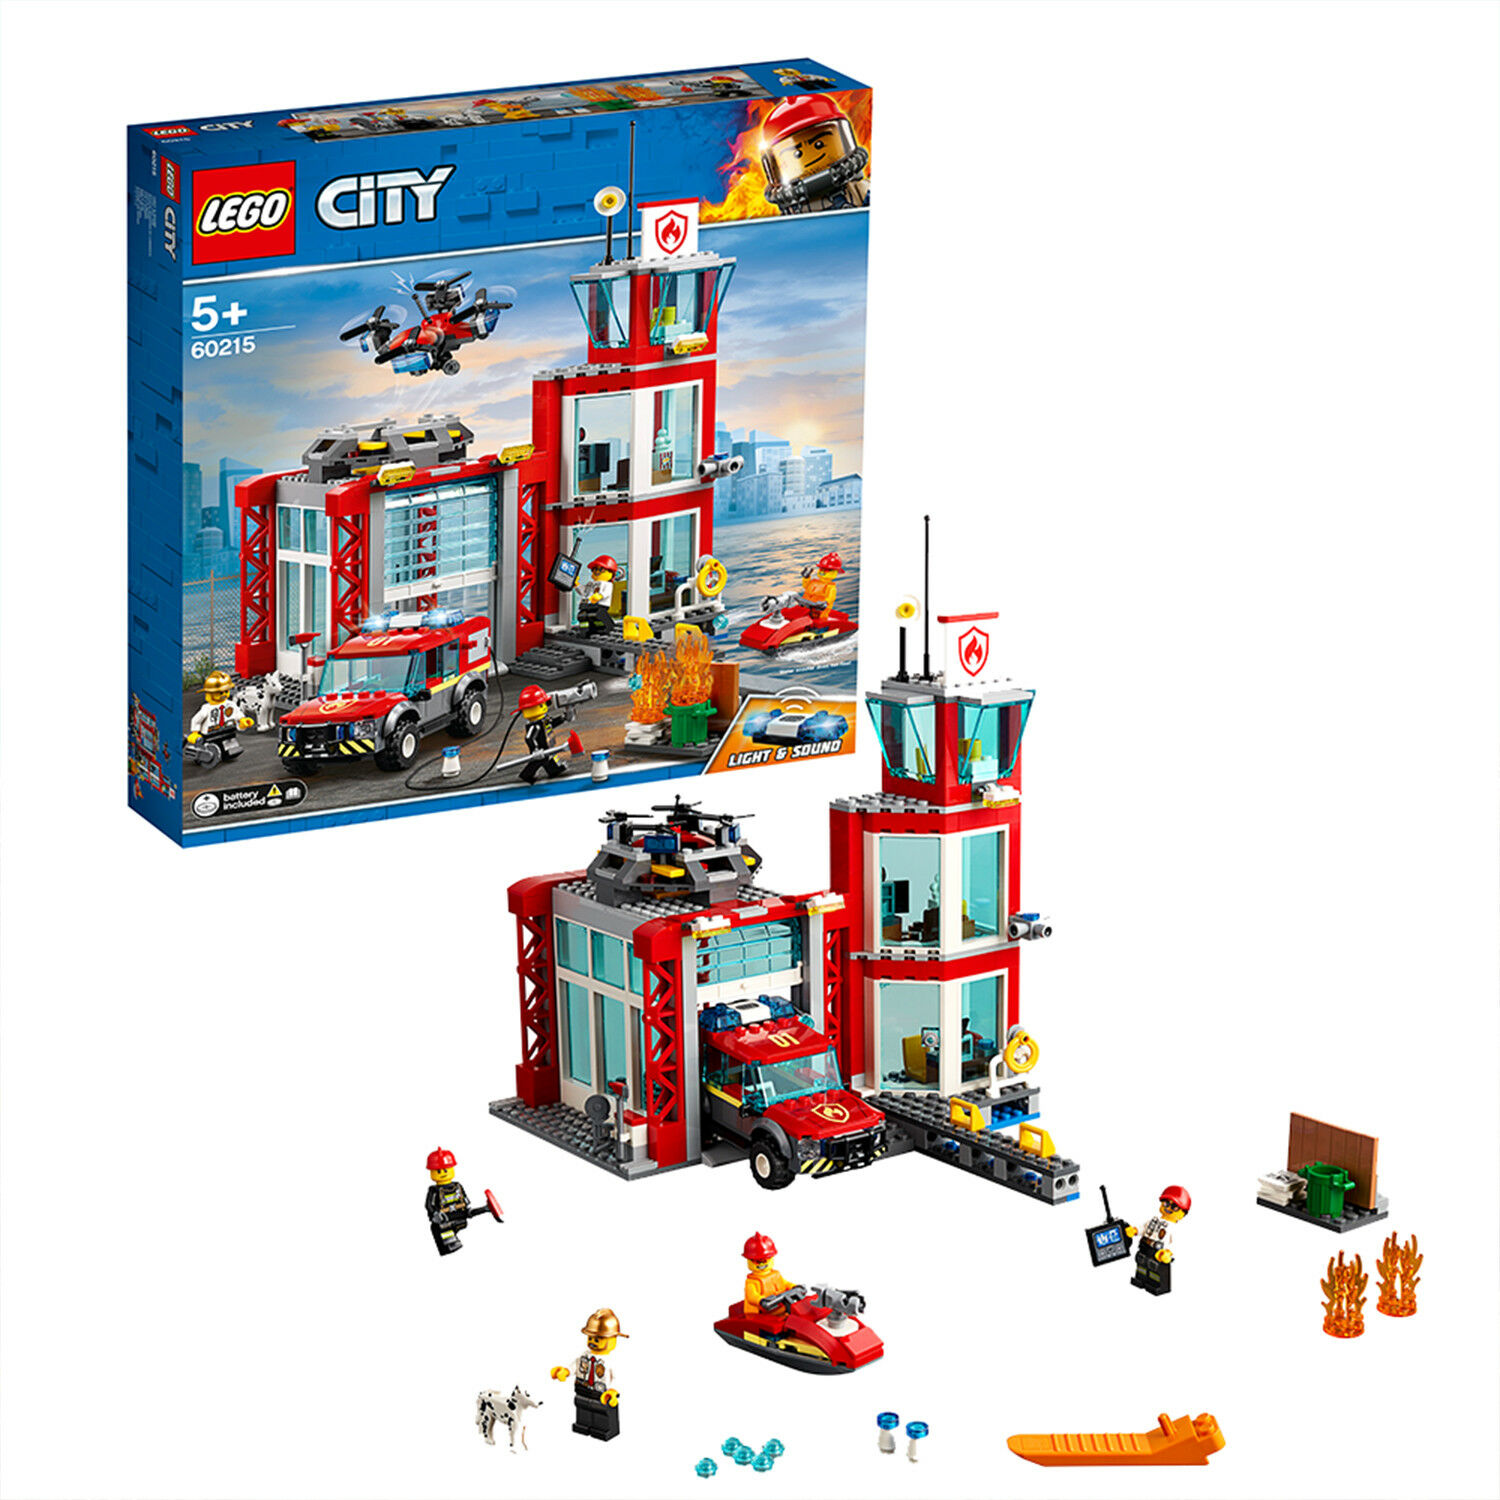 60215 LEGO CITY Fire Fire Fire Station 509 Pieces Age 5+ New Release for 2019 a25be4